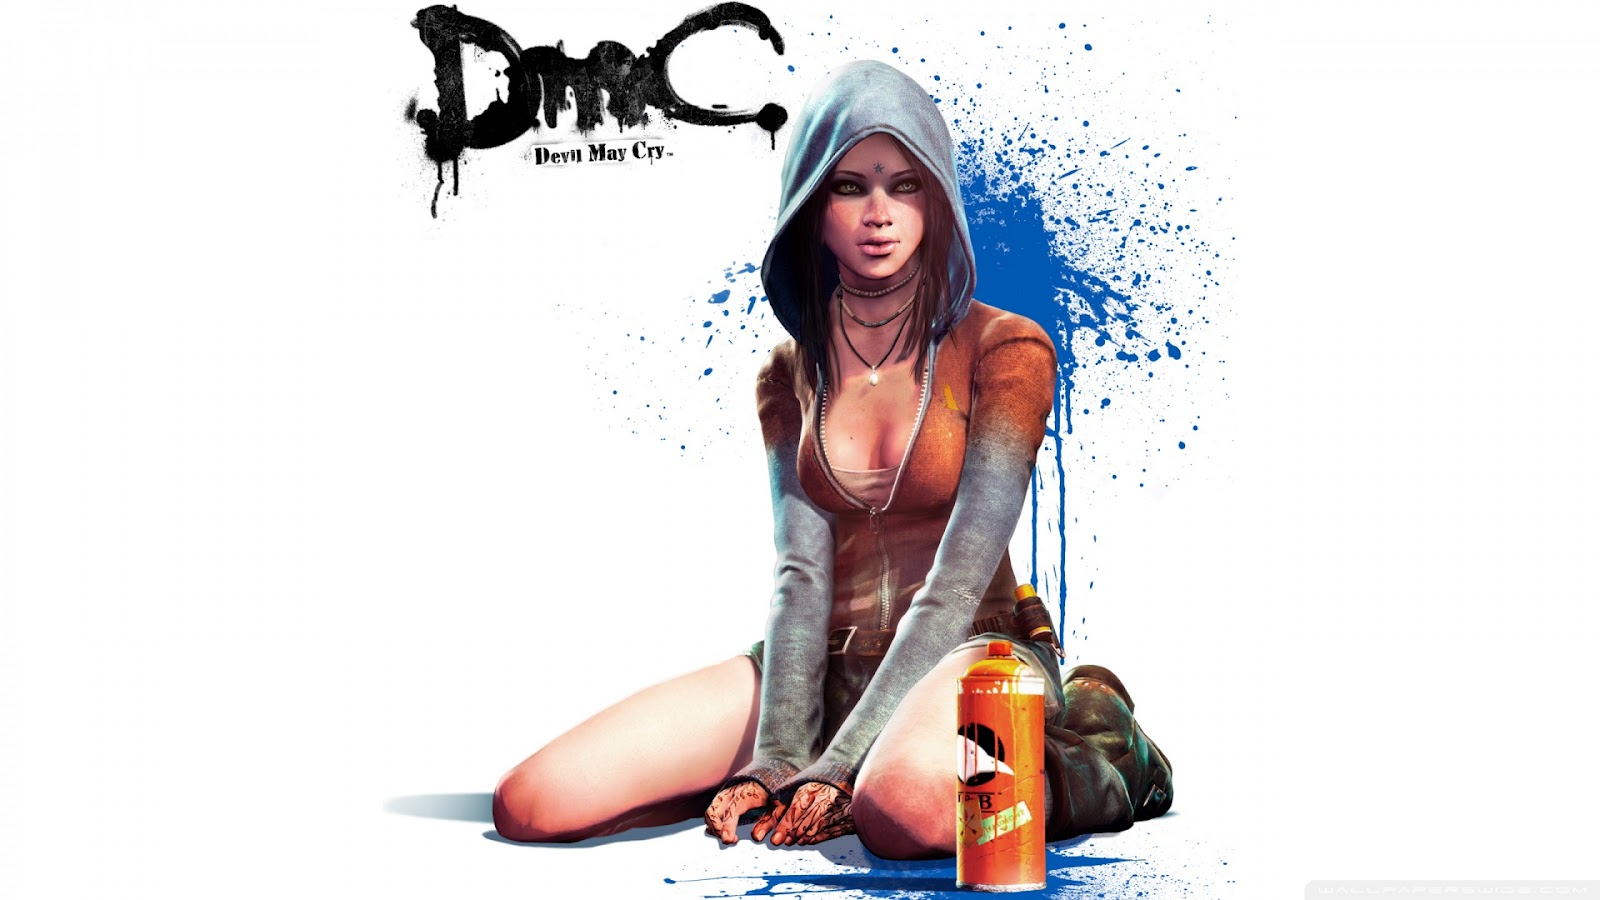 dmc devil may cry wallpaper 1920x1080 Devil May Cry 5 Wallpapers in HD   1080p